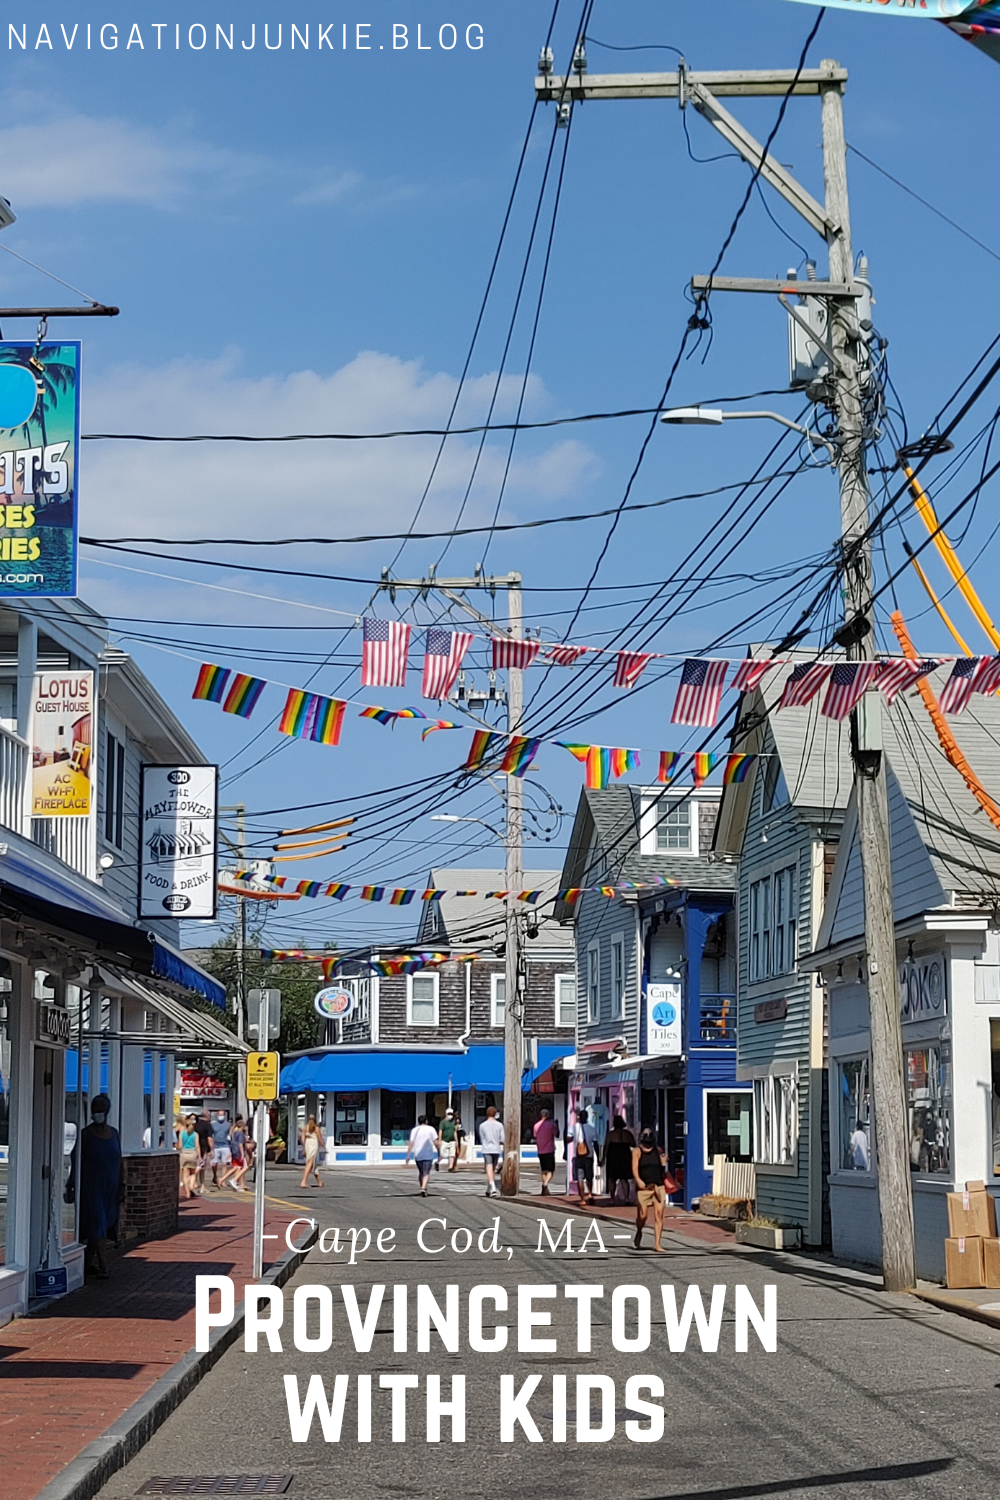 With white sand beaches, lighthouses, great food, culture, history, and family fun, Provincetown with kids makes for the perfect getaway.